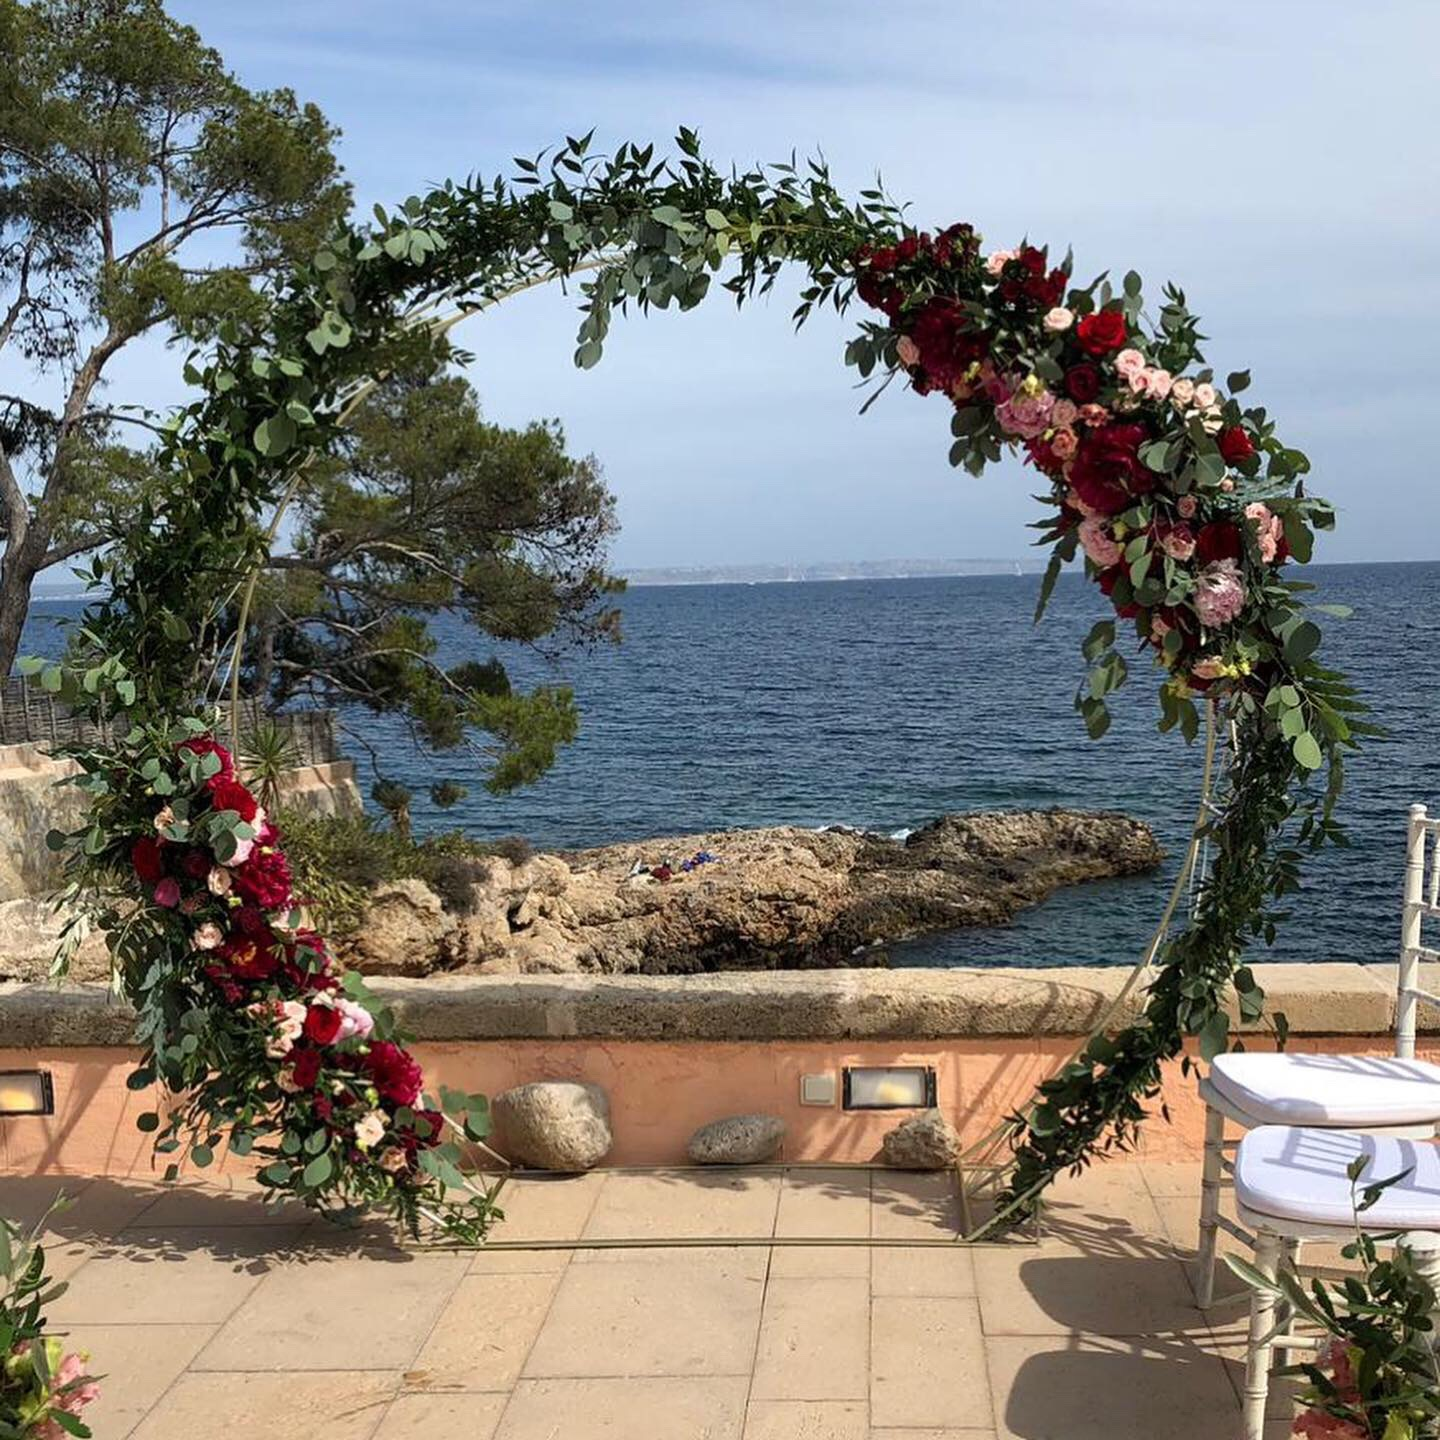 A beautiful moongate floral arch framing the sea